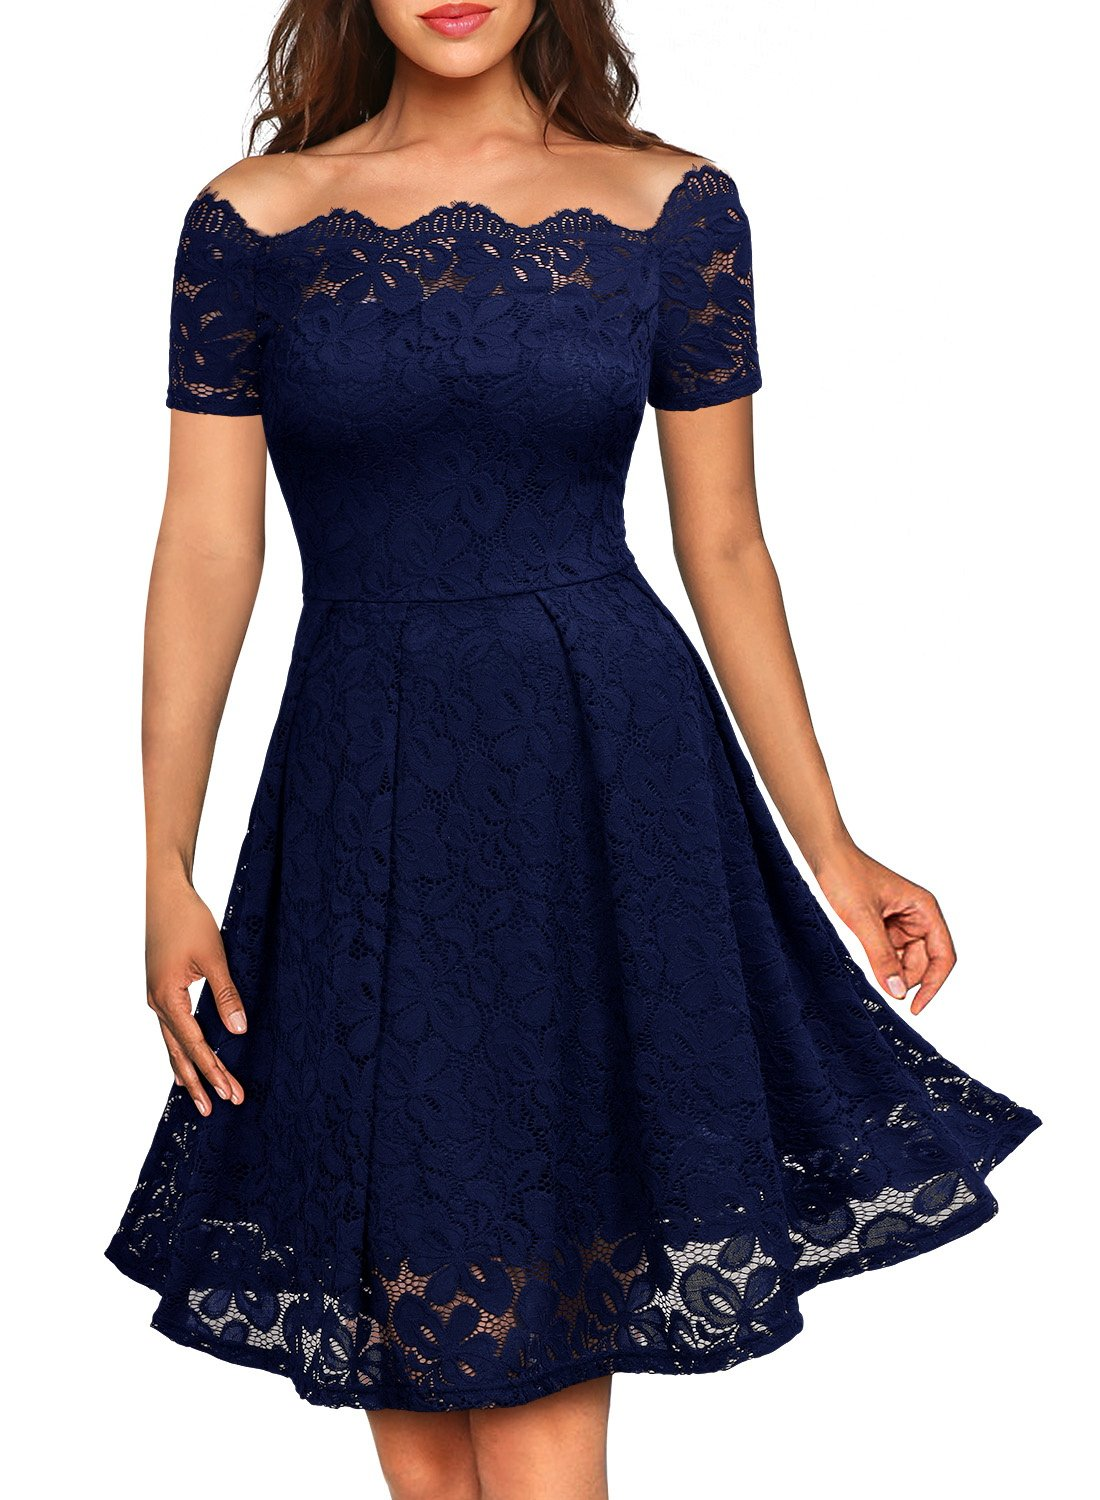 Party Dresses - Women's Vintage Floral Lace Short Sleeve Boat Neck Cocktail Party Swing Dress